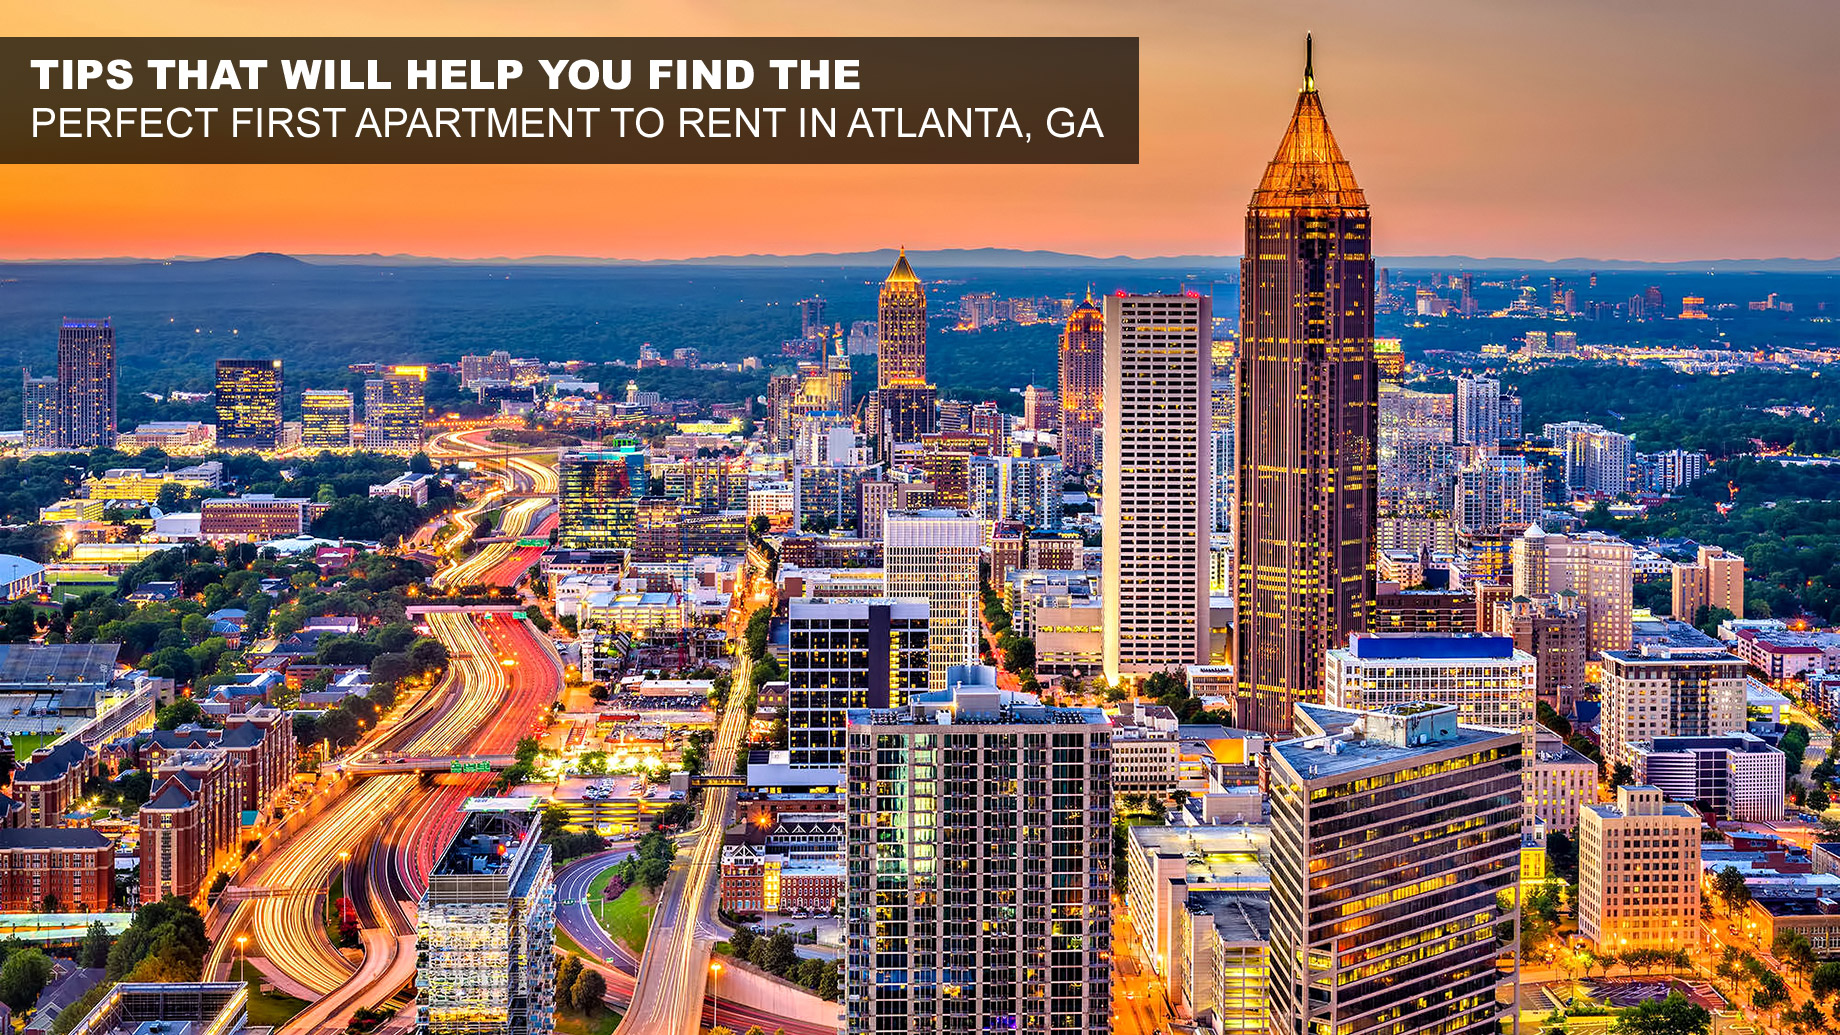 Tips that Will Help You Find the Perfect First Apartment to Rent in Atlanta, GA